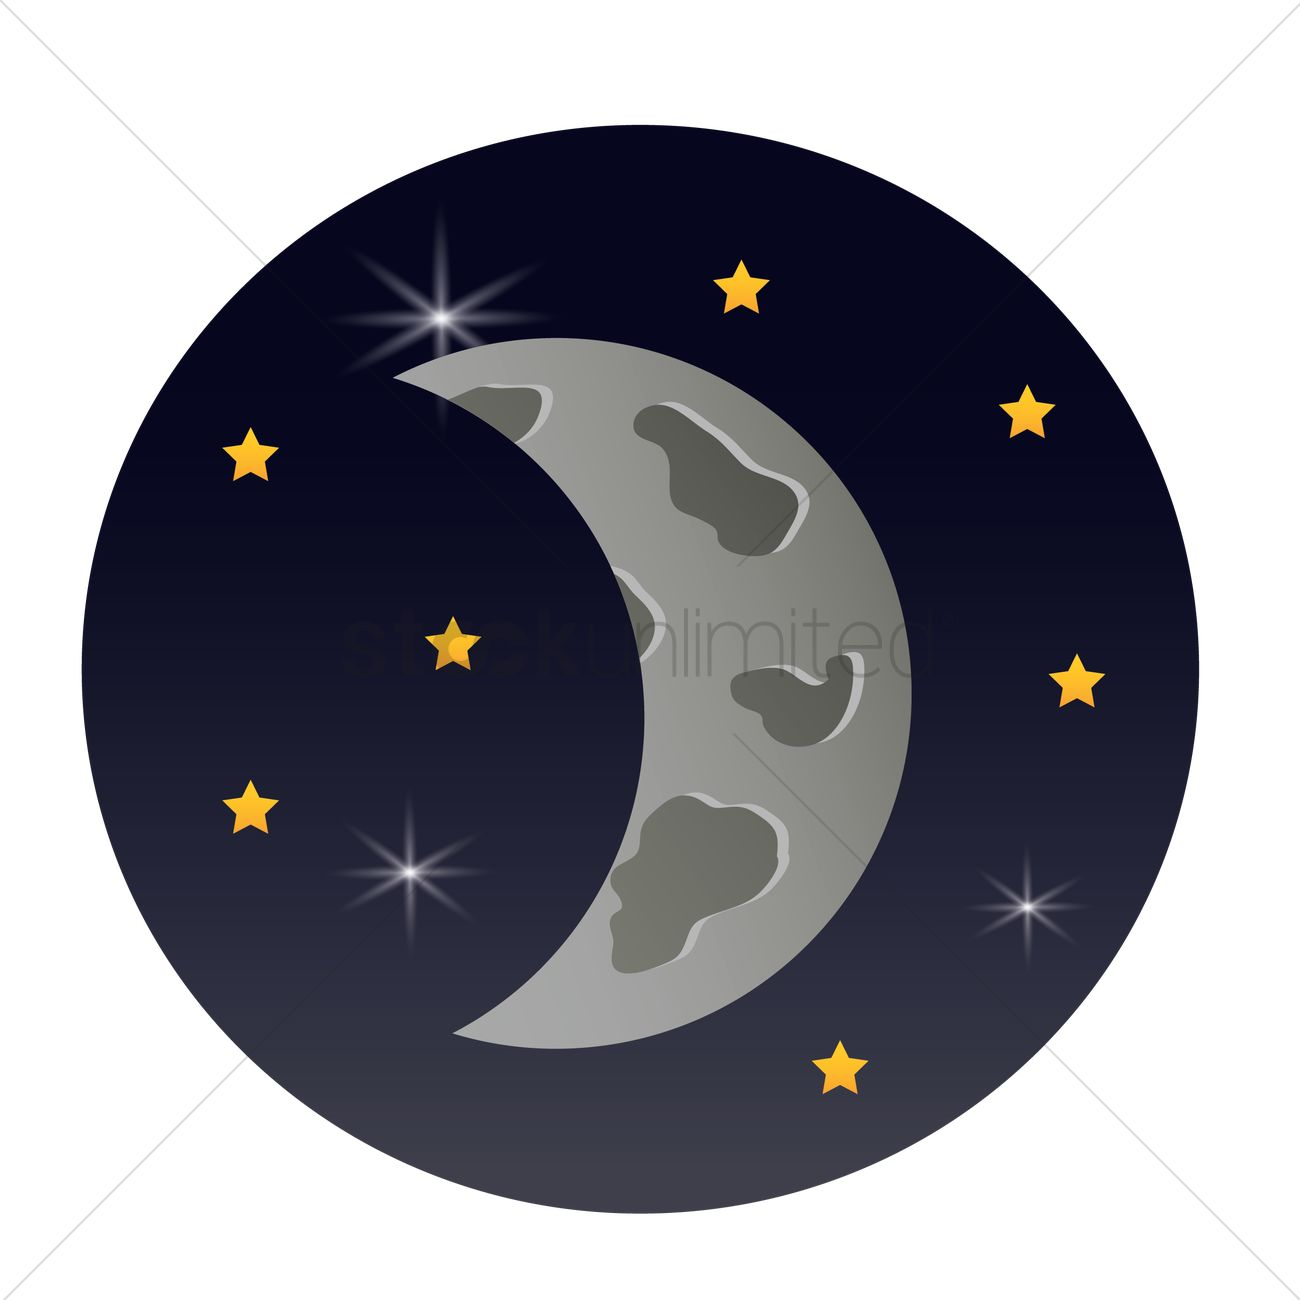 crescent moon vector image 1952103 stockunlimited crescent moon vector image 1952103